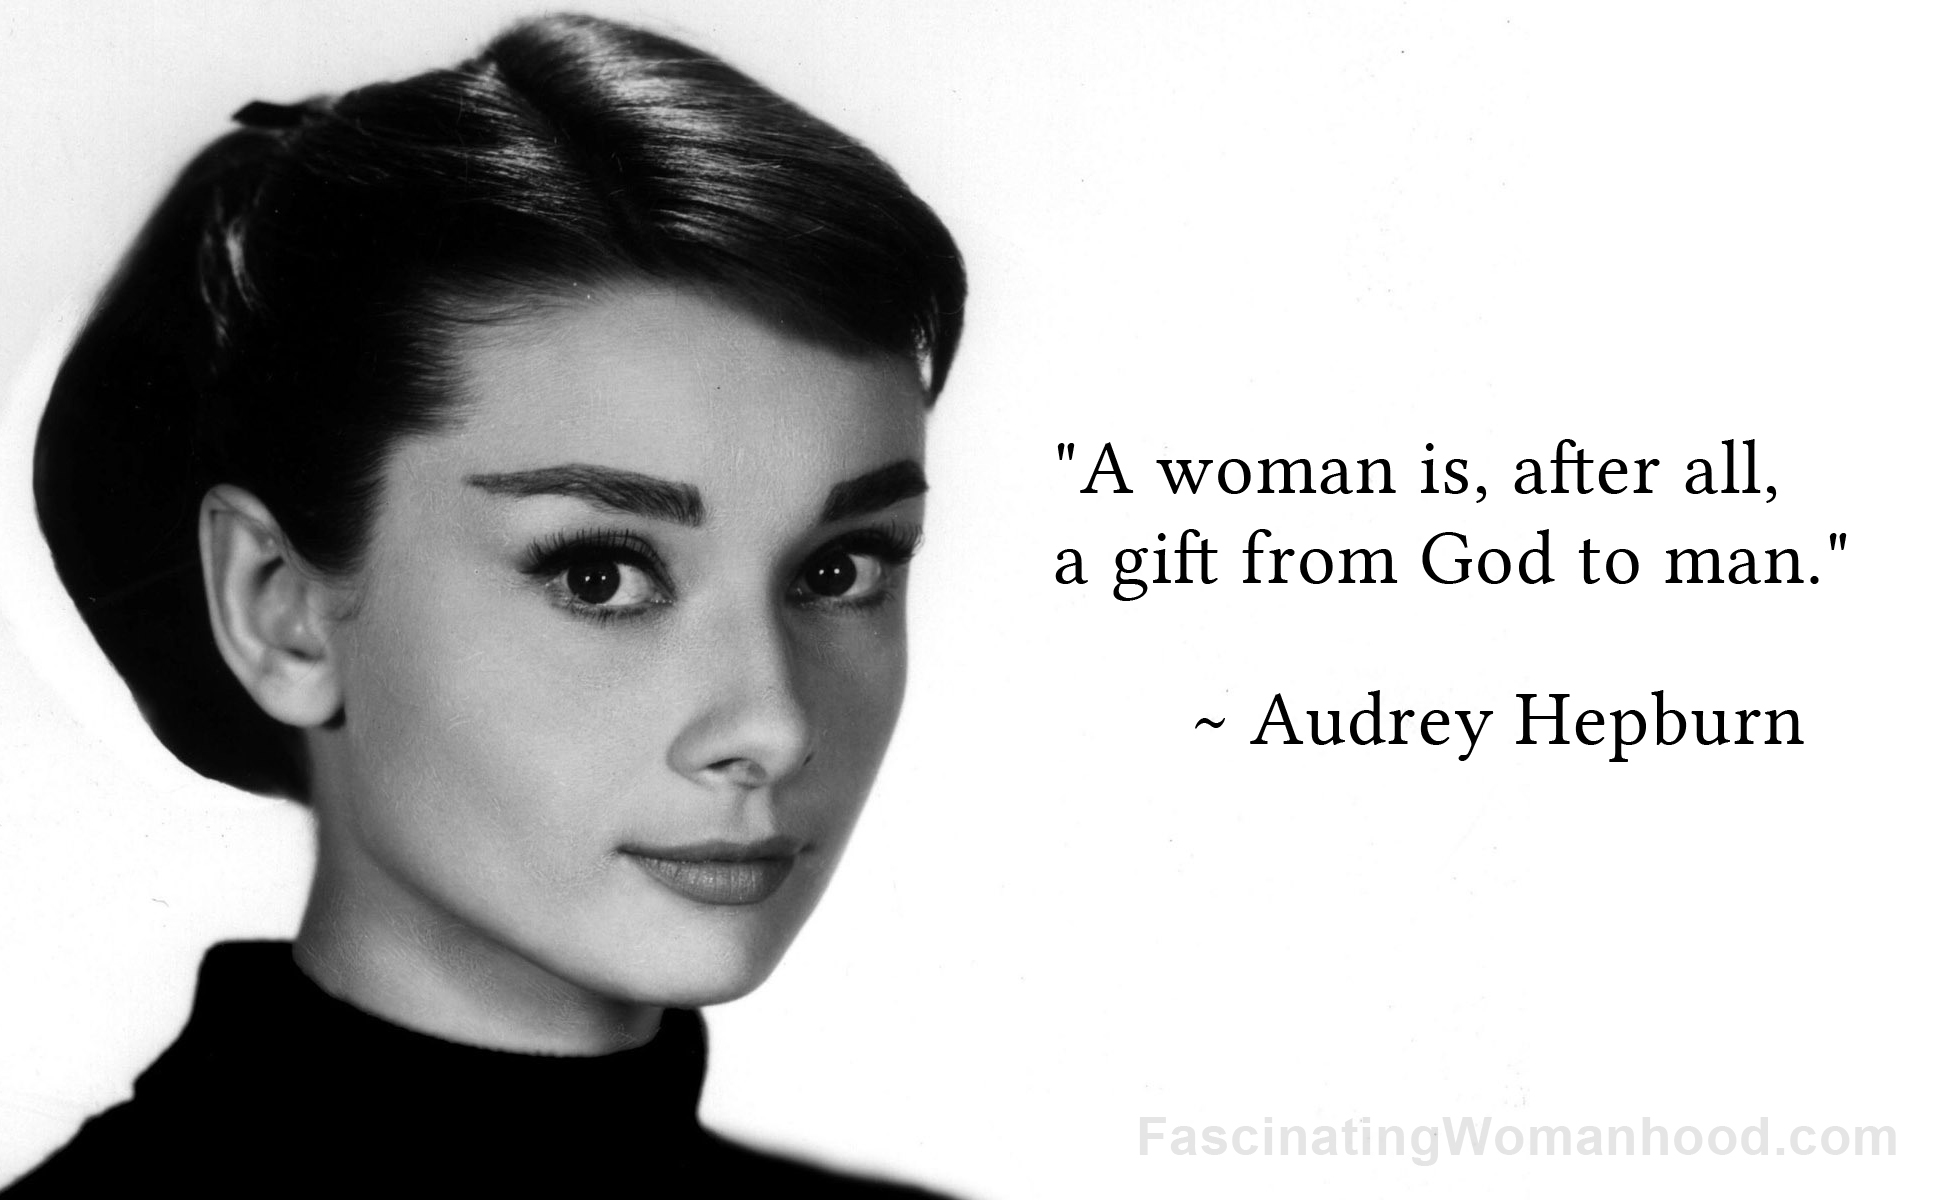 A Quote by Audrey Hepburn 4.jpg